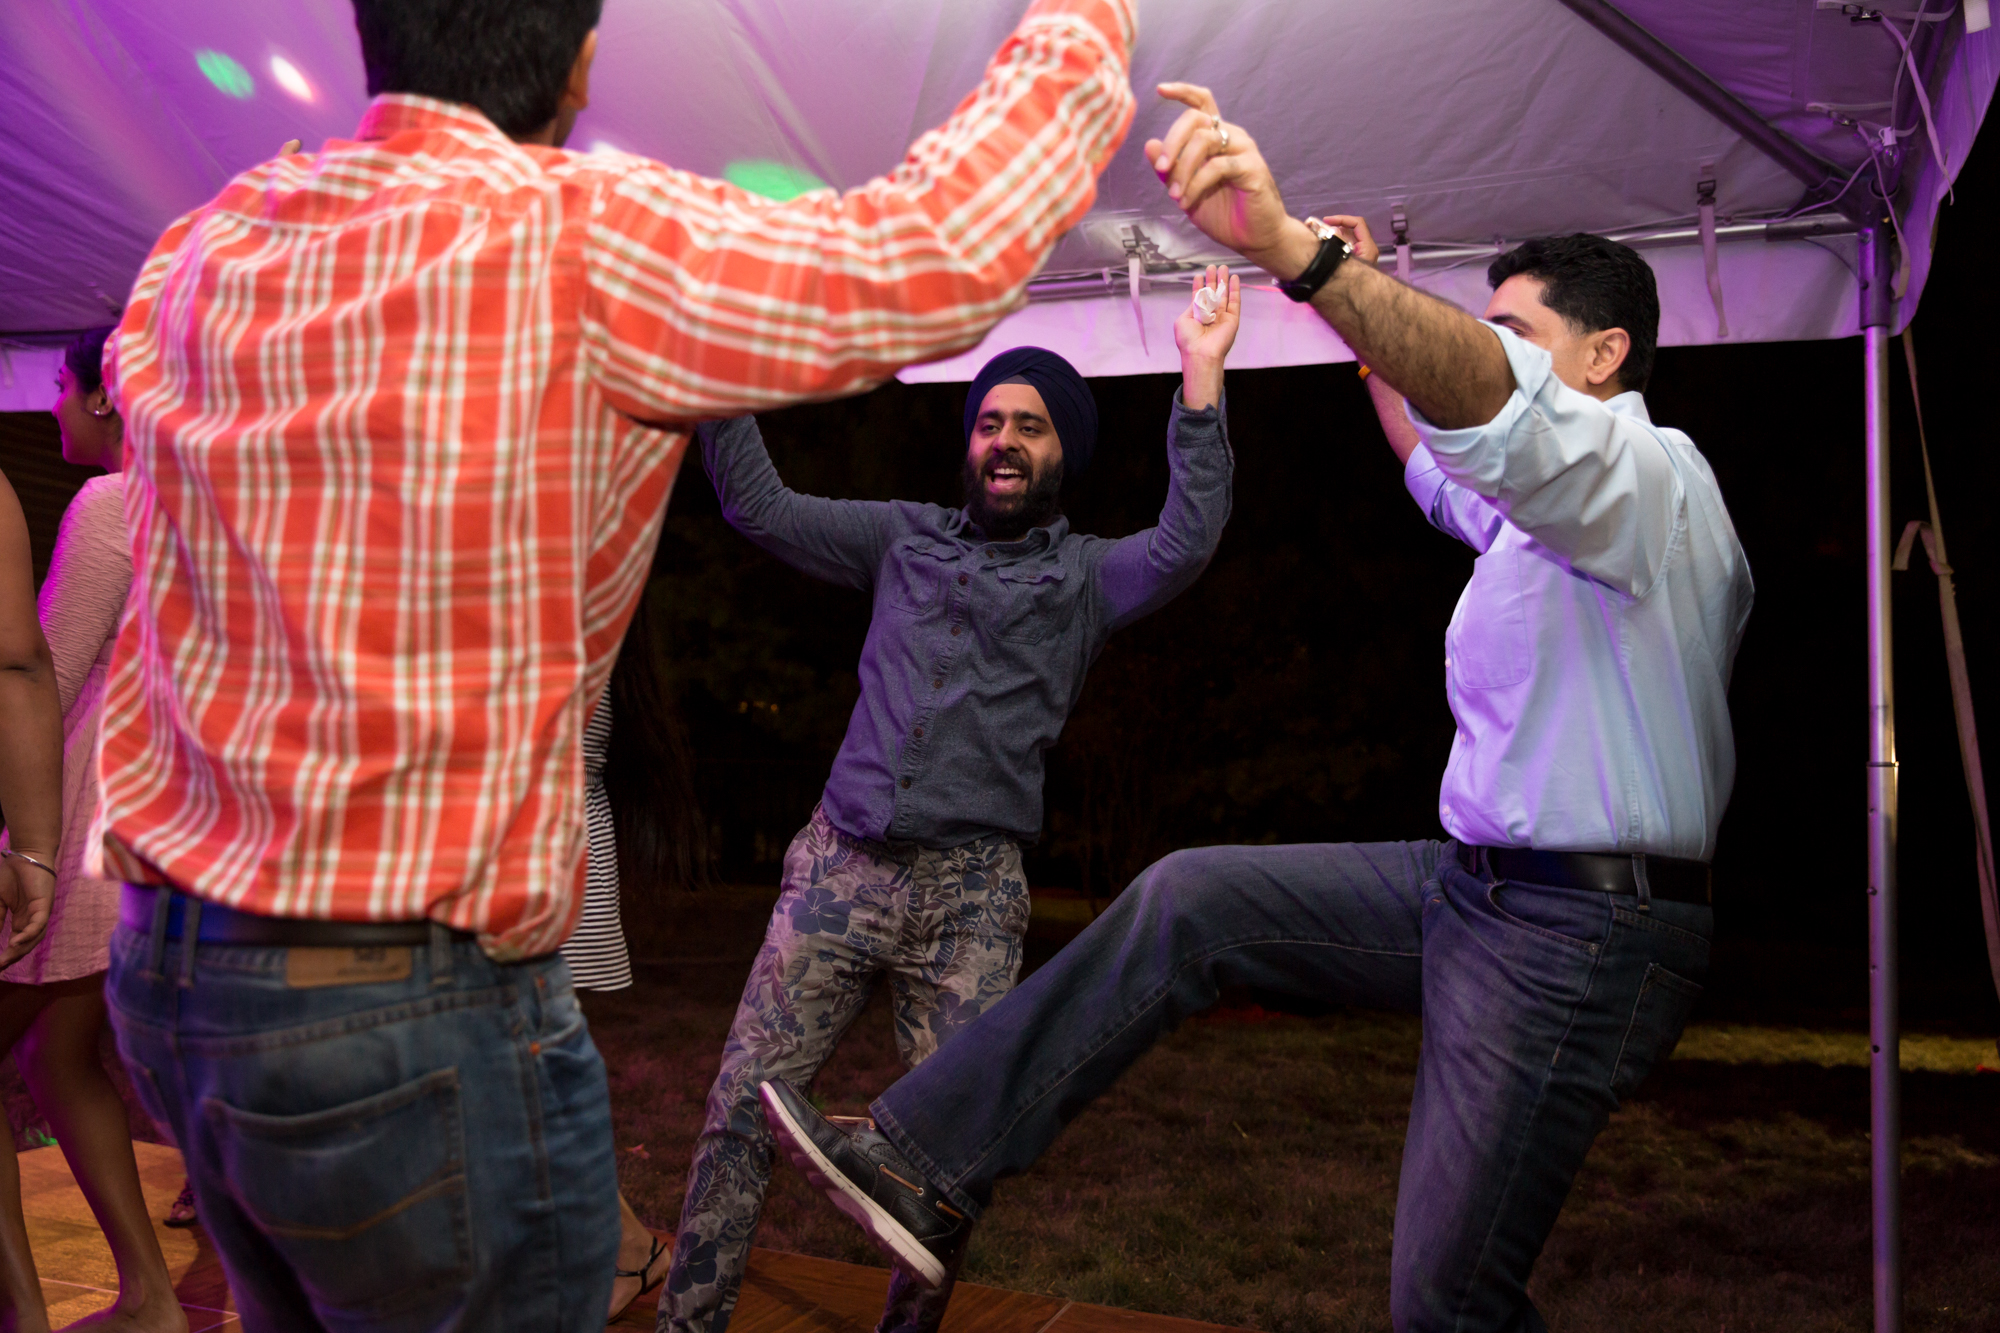 30-William Hendra Photography Singh Graduation Party.jpg